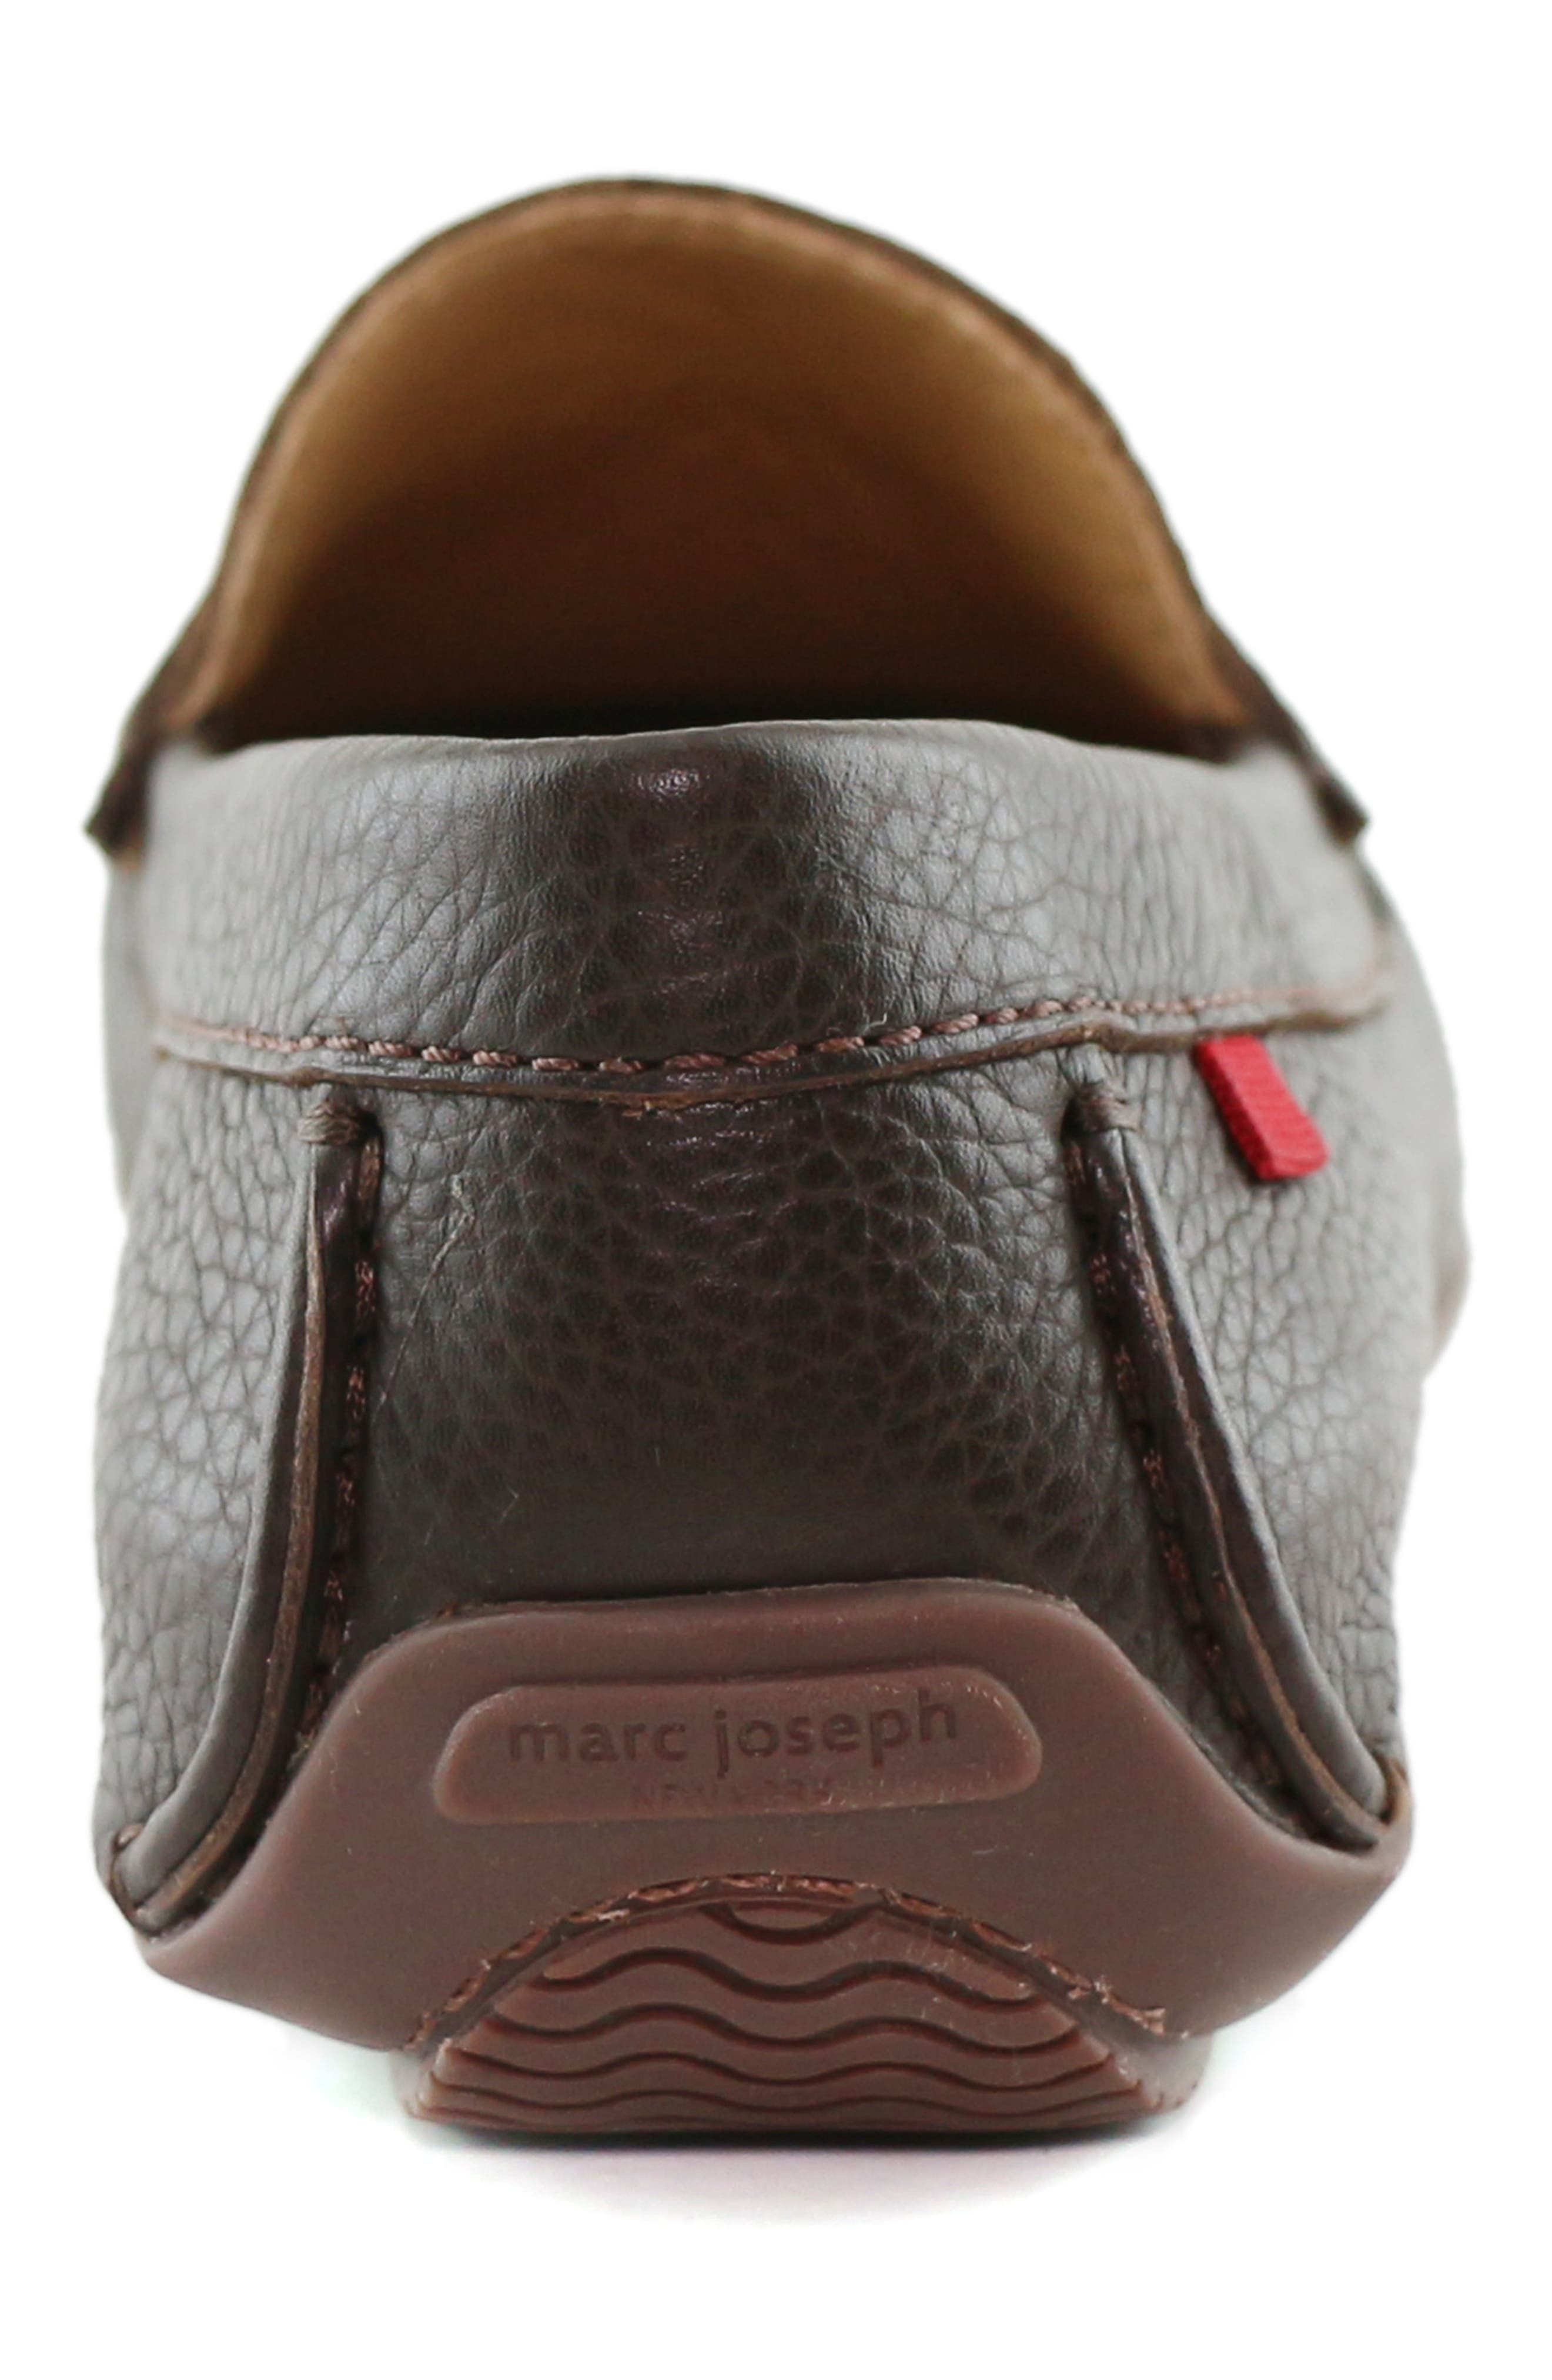 MARC JOSEPH NEW YORK, 'Union Street' Penny Loafer, Alternate thumbnail 7, color, BROWN GRAINY LEATHER